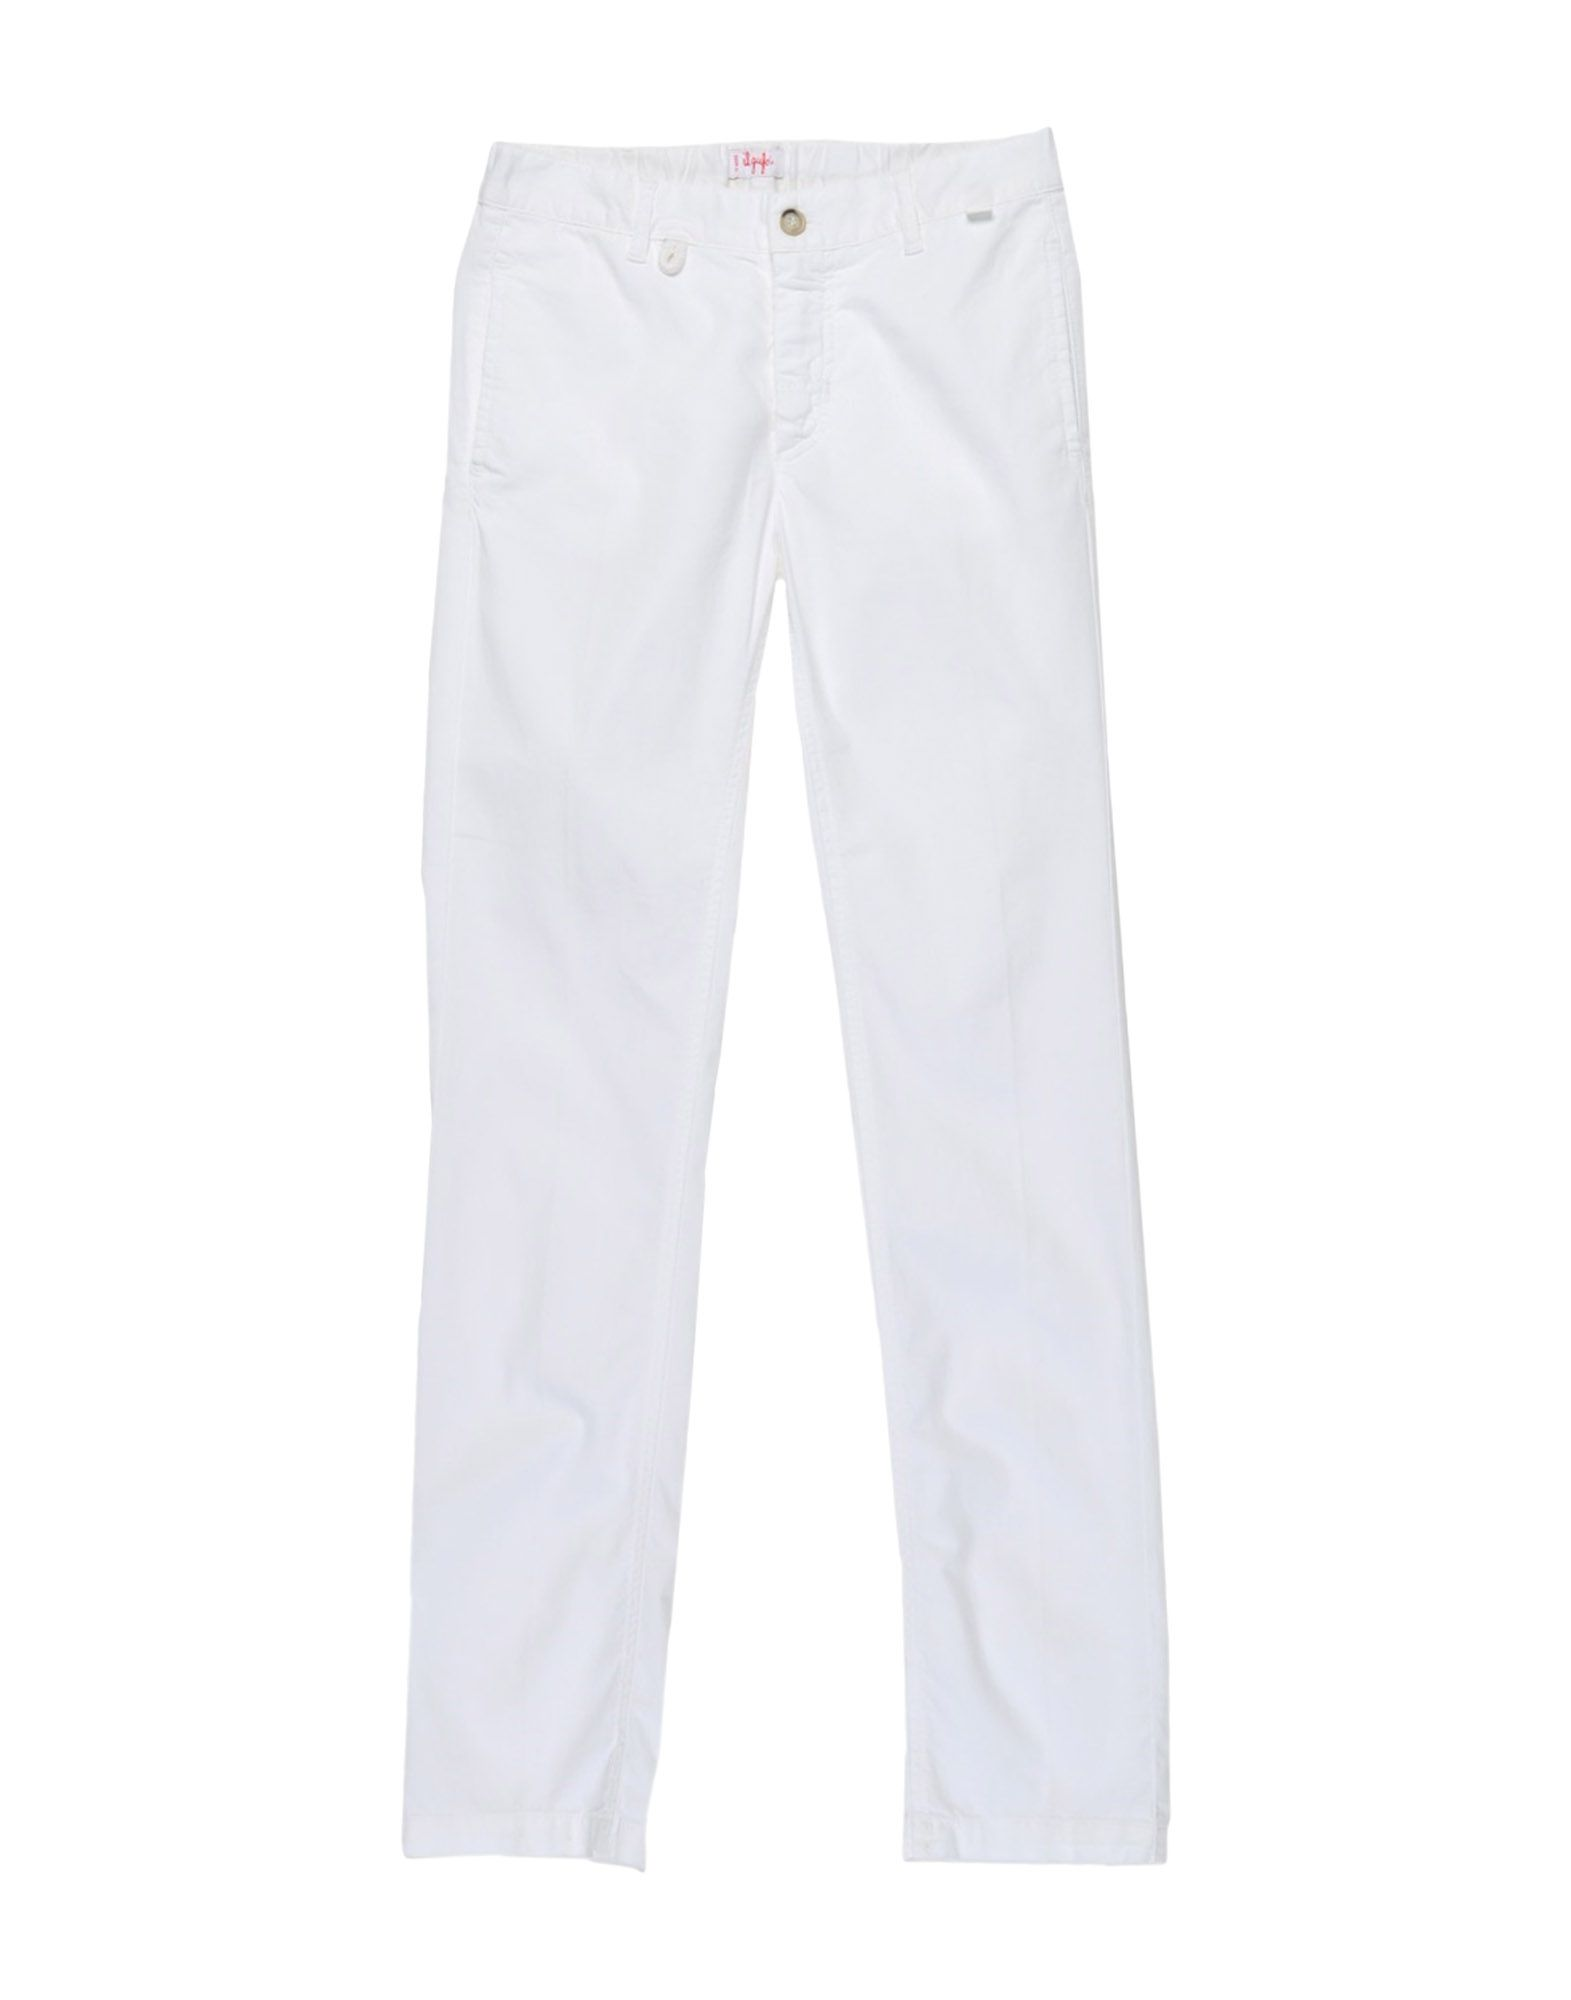 Il Gufo Kids' Casual Pants In White